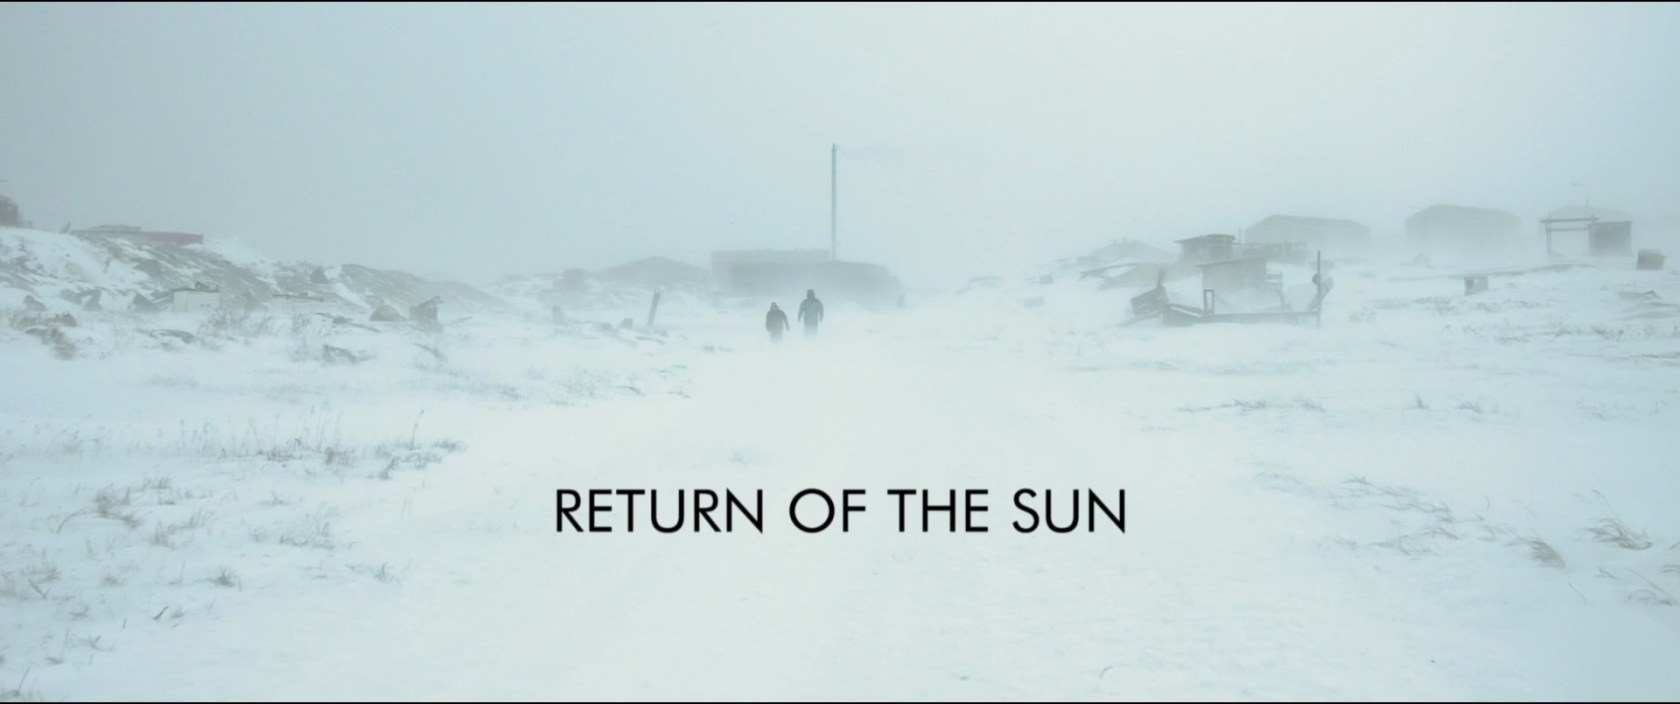 Return of the Sun (Glen Milner & Ben Hilton, 2012). Documentary title screenshot.